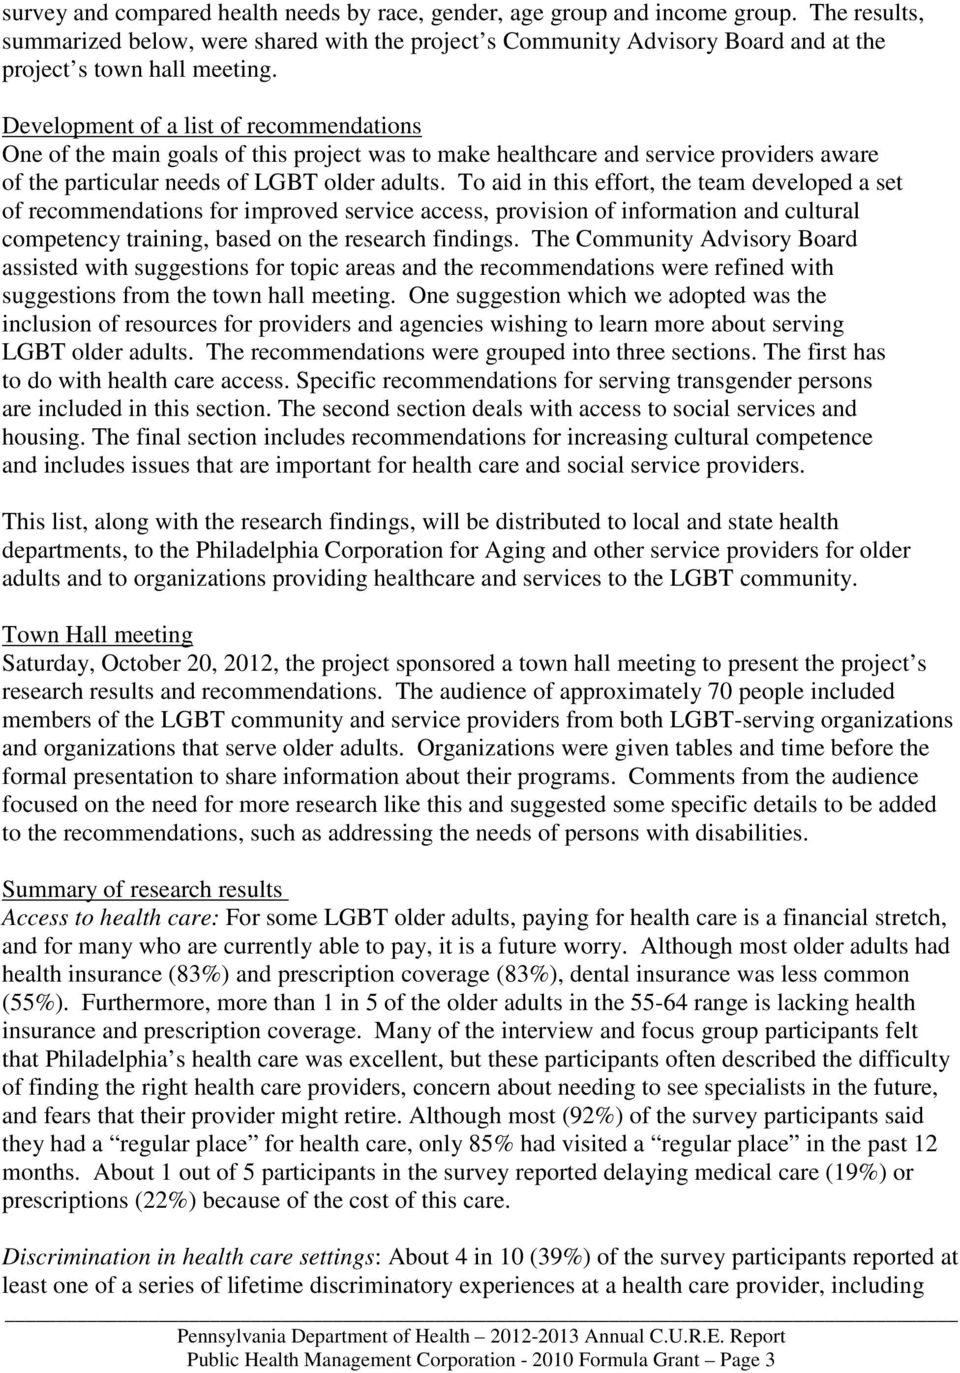 Development of a list of recommendations One of the main goals of this project was to make healthcare and service providers aware of the particular needs of LGBT older adults.